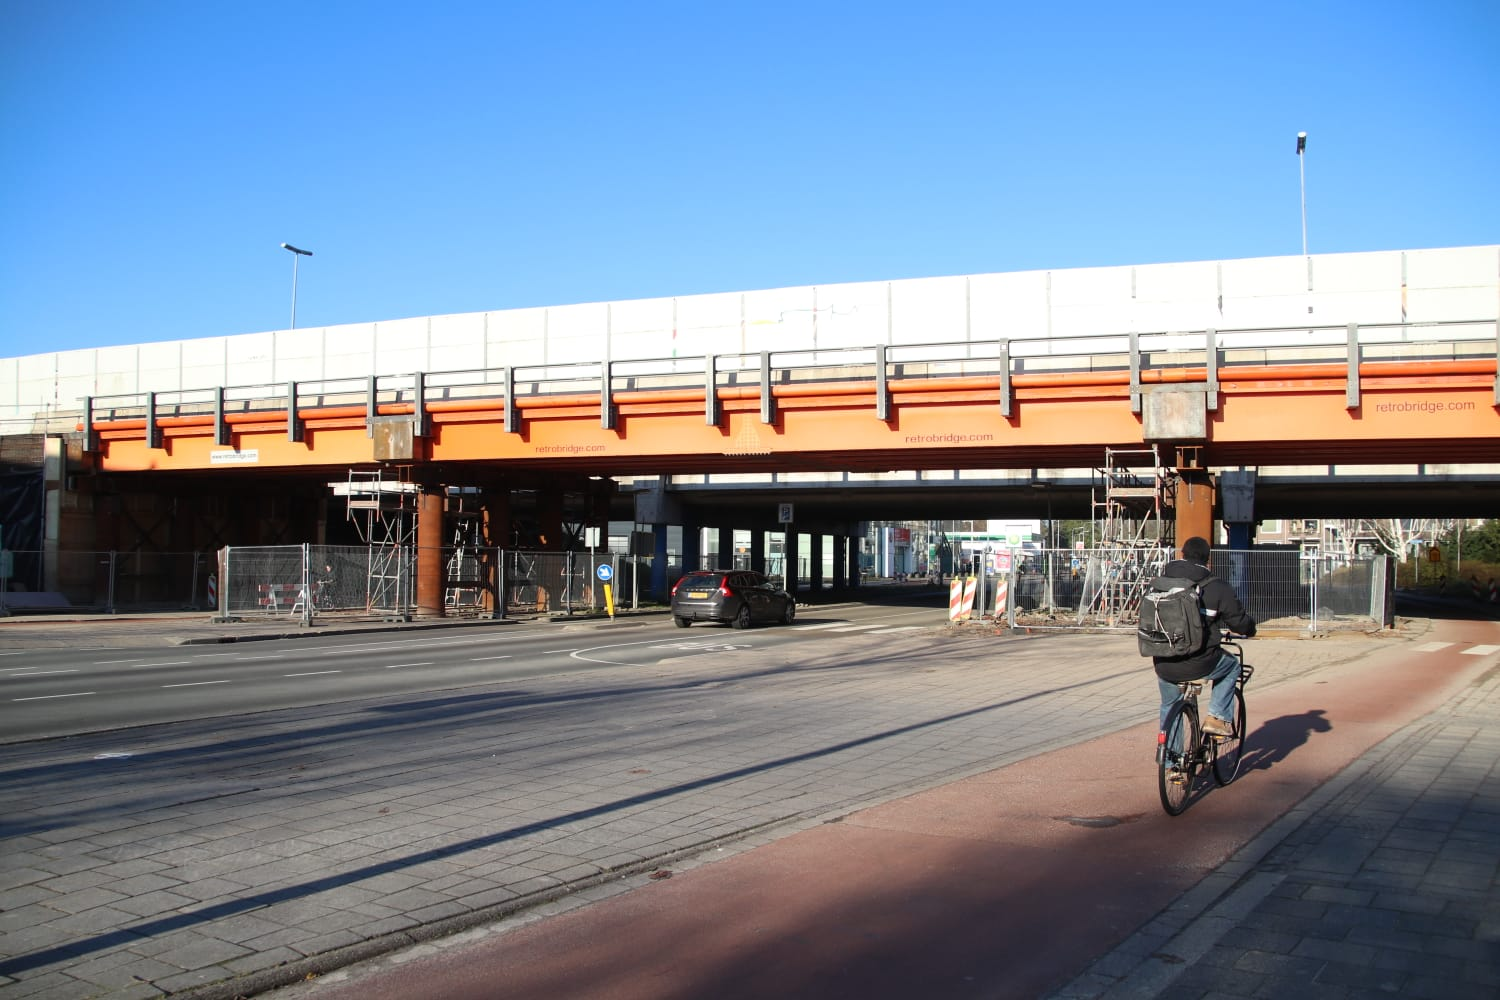 Offer a quick solution to the noise inconvenience of Paterswoldseweg Bridge